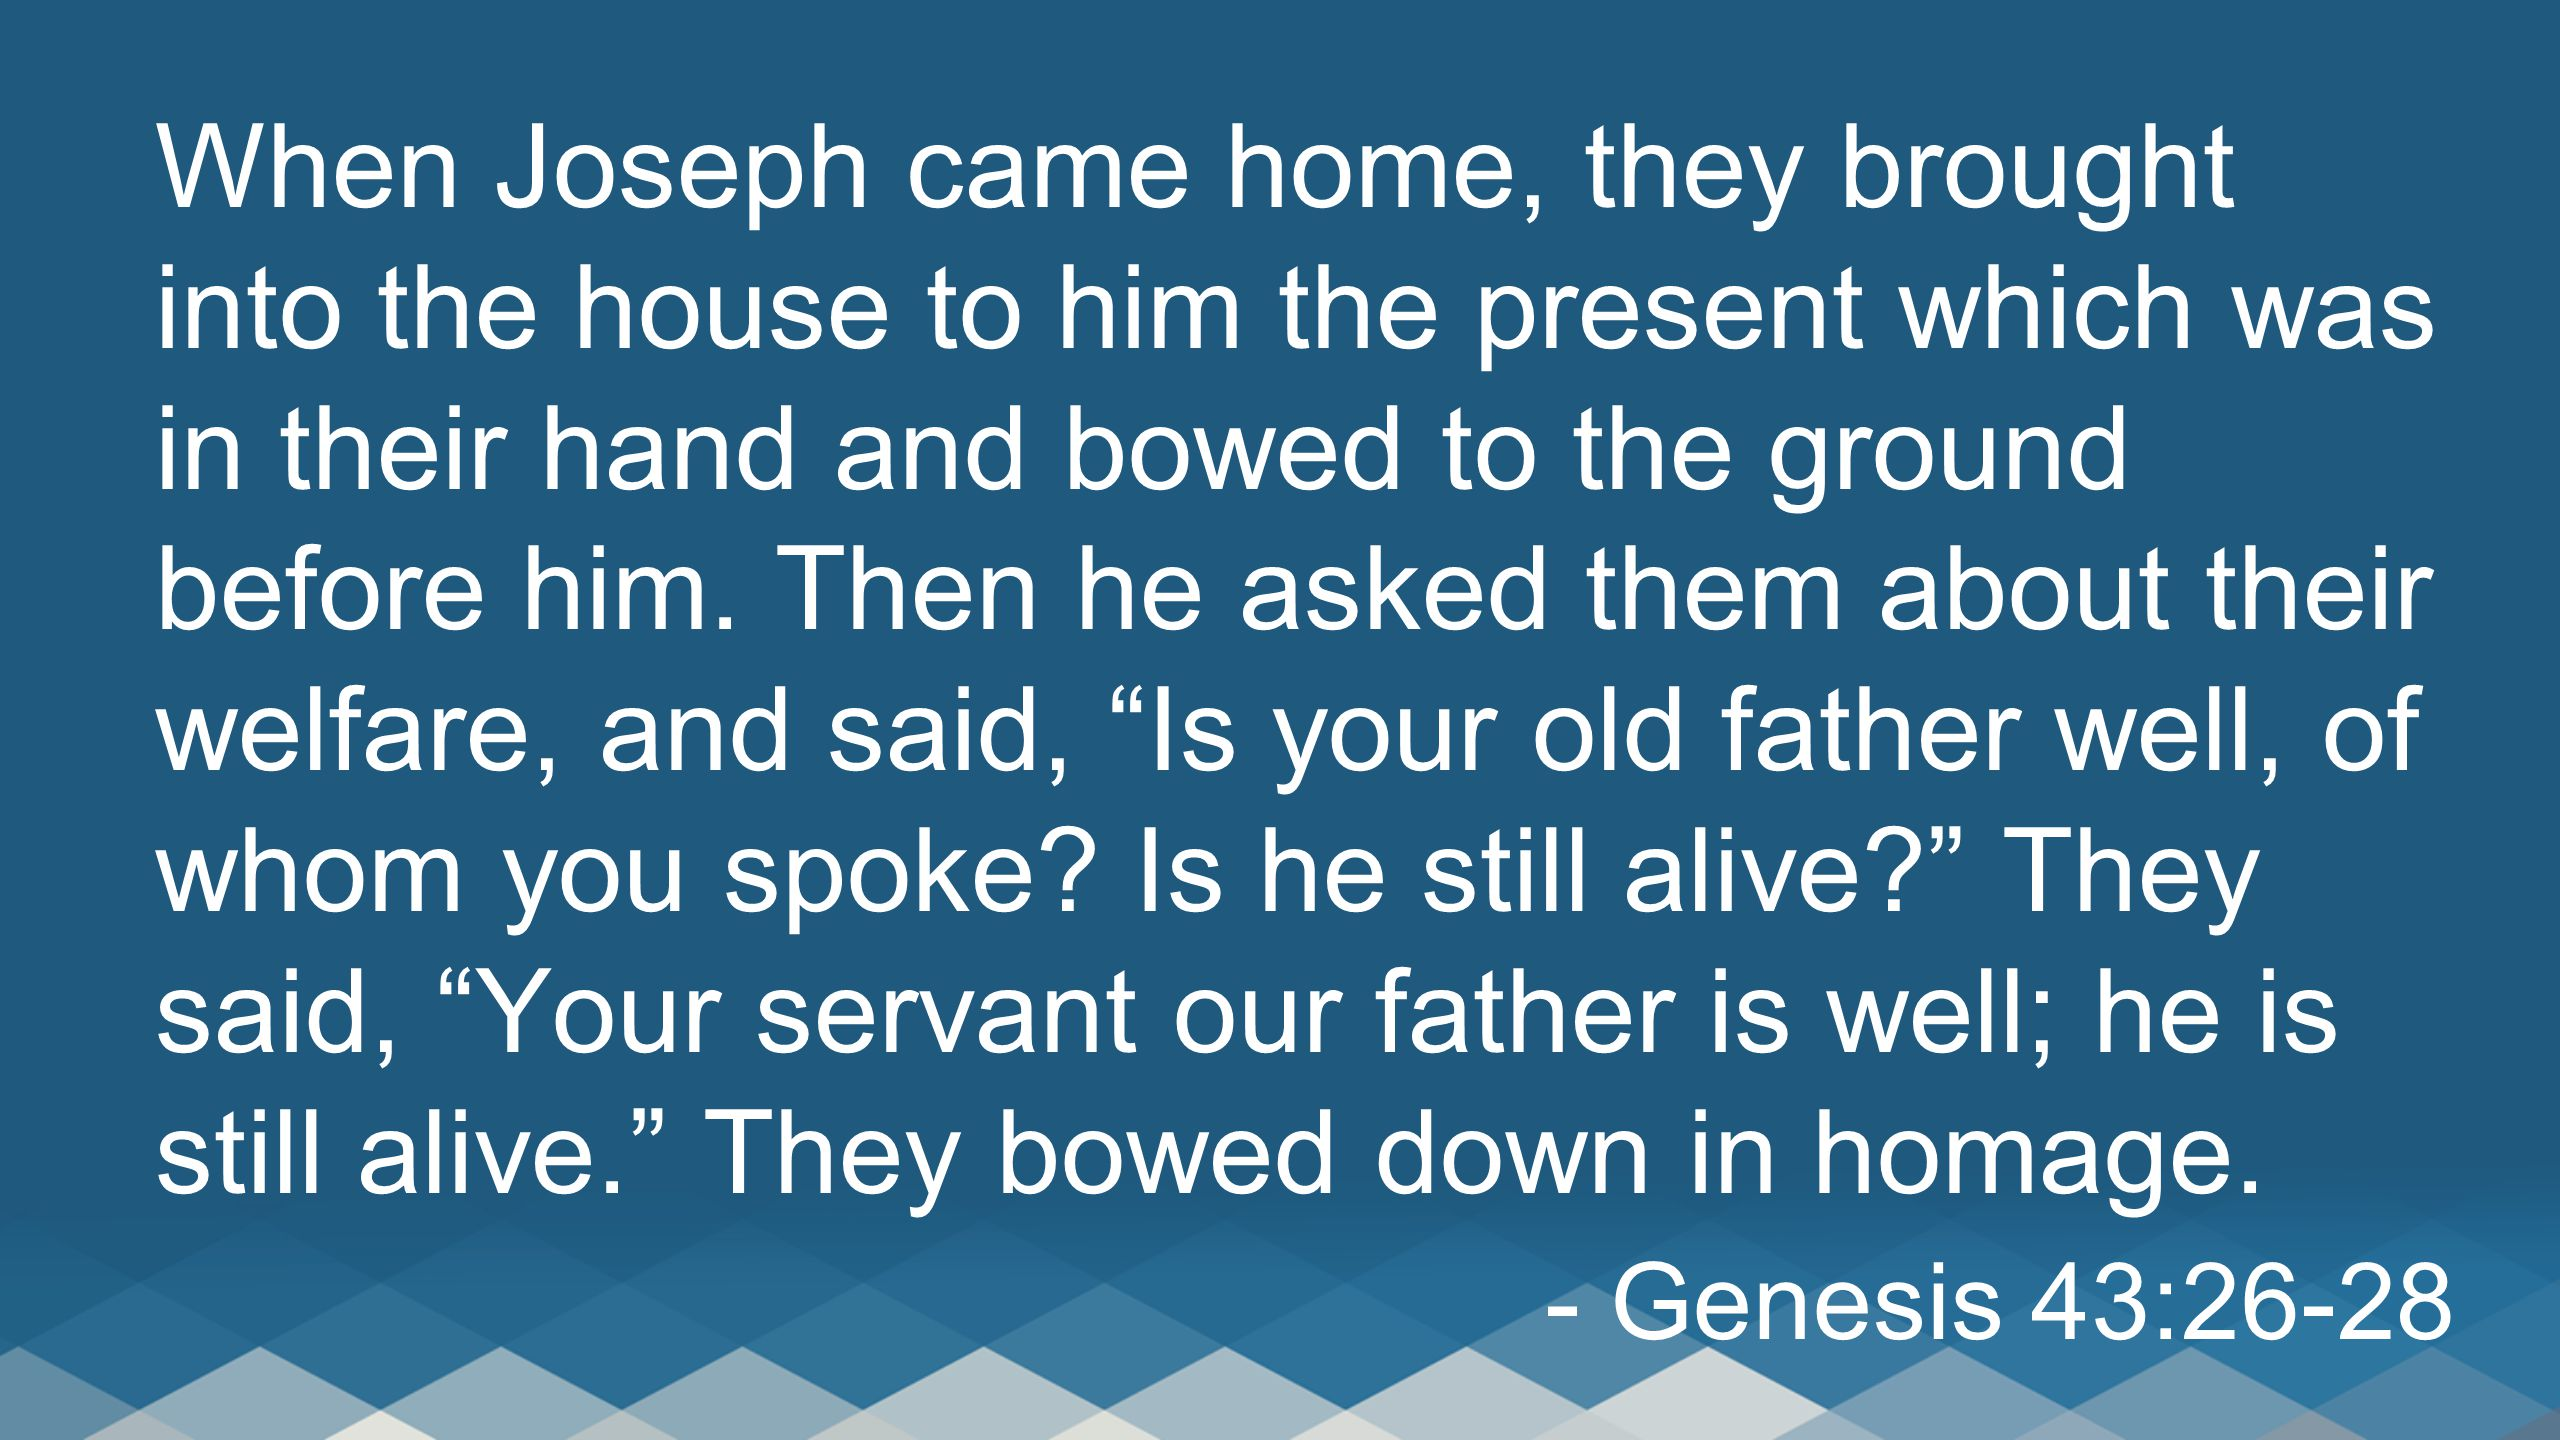 When Joseph came home, they brought into the house to him the present which was in their hand and bowed to the ground before him. Then he asked them about their welfare, and said, Is your old father well, of whom you spoke Is he still alive They said, Your servant our father is well; he is still alive. They bowed down in homage.